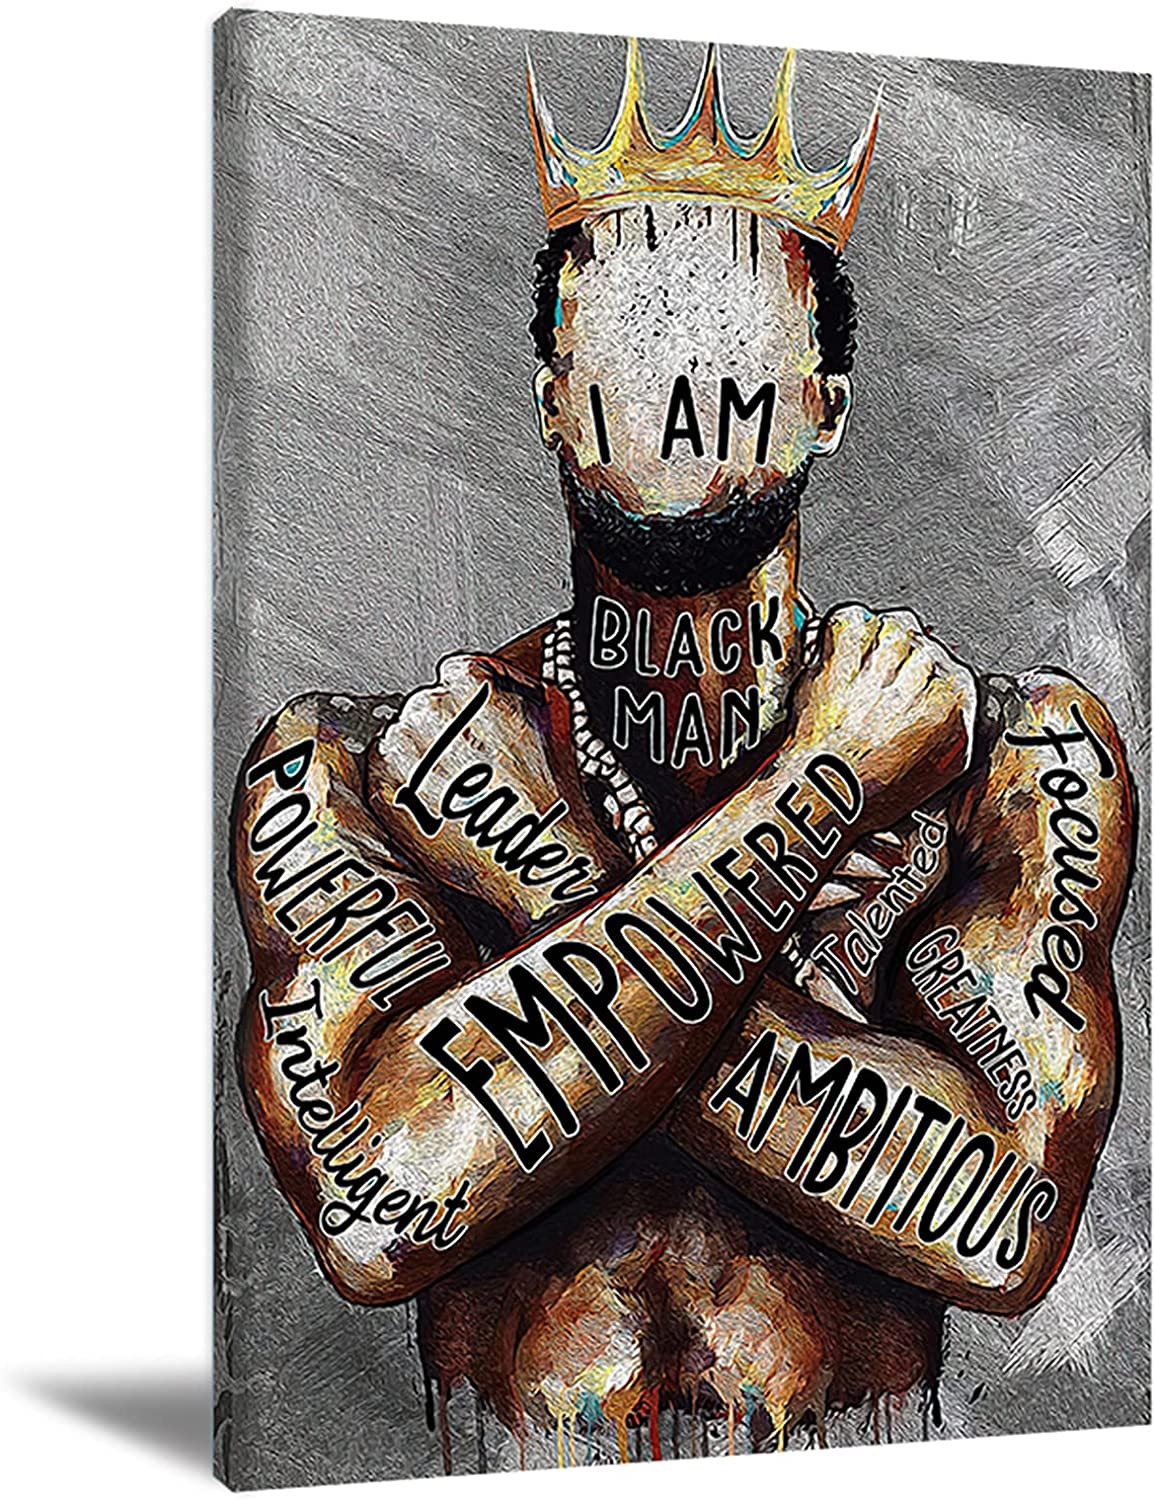 Black Man Wall Art African American Man Poster Black Men I Am Empowered King Painting - Motivational Phrases Black Men Portrait Wall Art Abstract Canvas Prints Home Decor For Bedroom Living Room